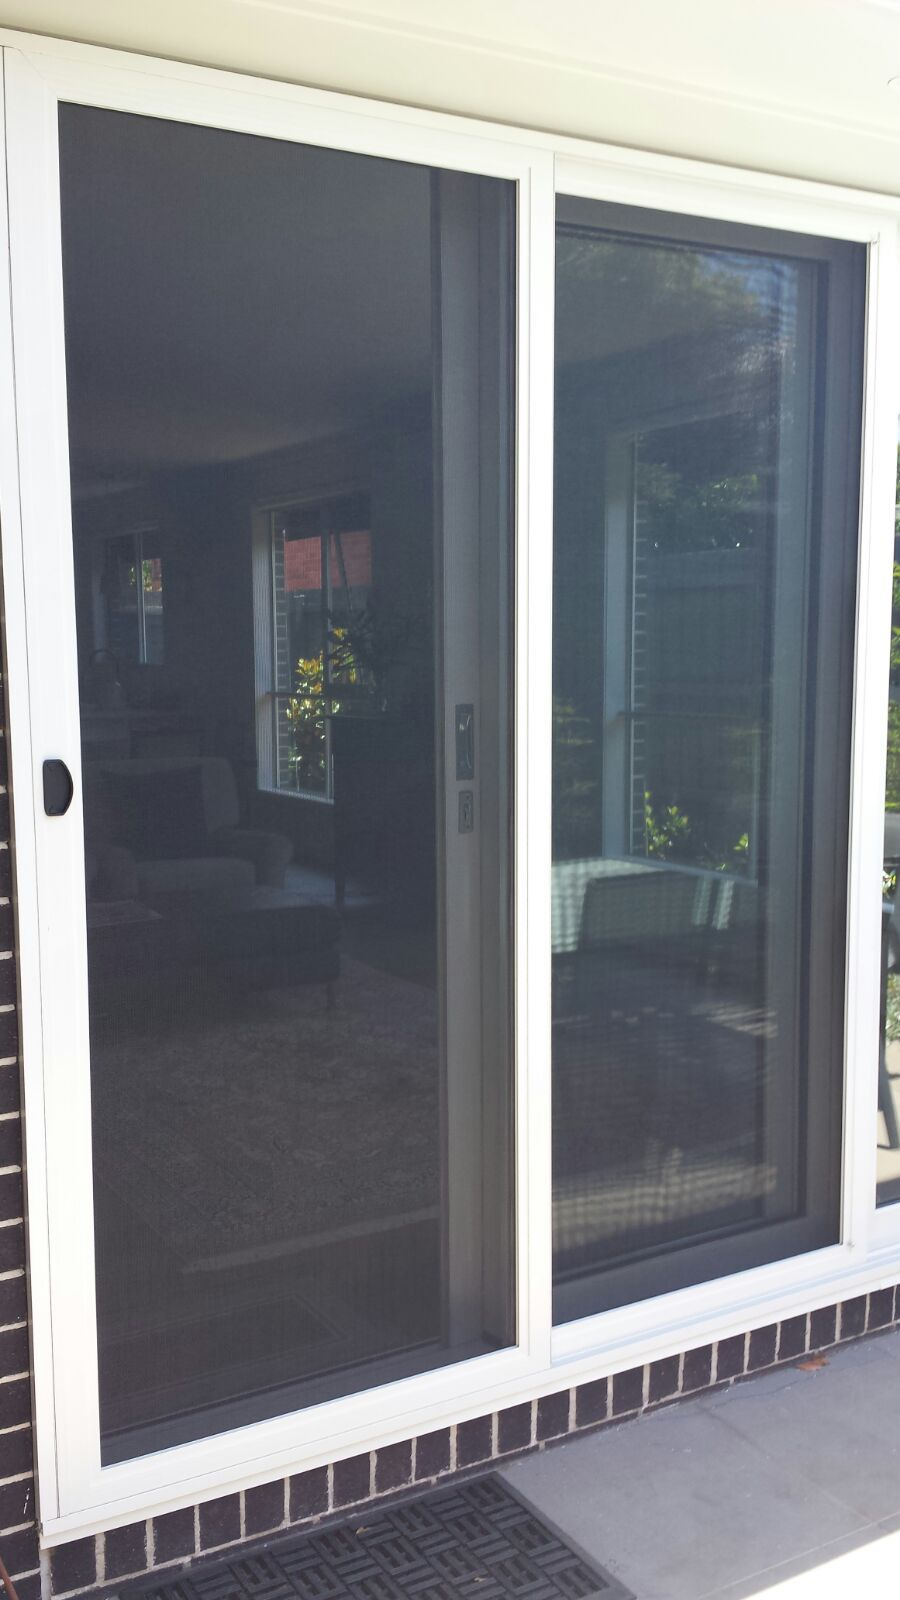 Aluminium Frame Fly Screen Sliding Door With Aluminium Tuff Mesh Installed  In Mordialloc.